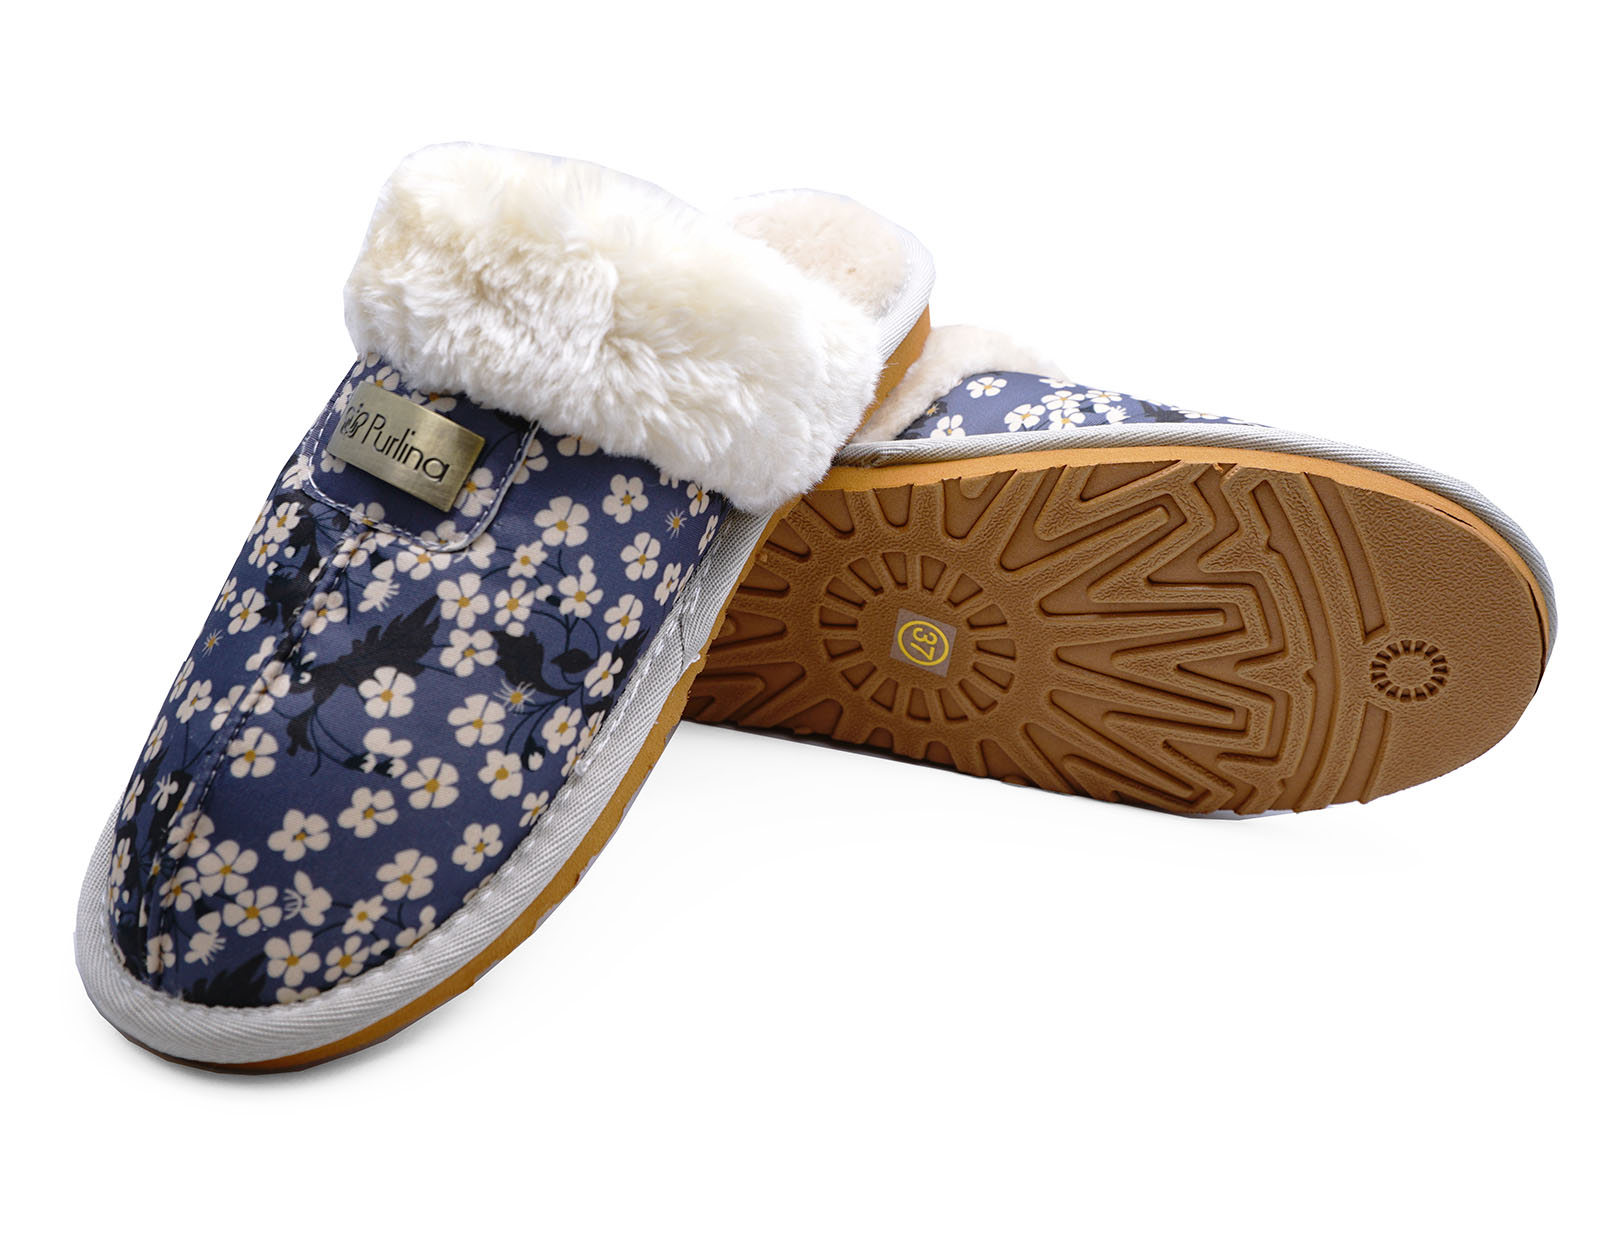 LADIES-BLUE-DAISY-SLIP-ON-FUR-LINED-MULES-WARM-INDOOR-LUXURY-SLIPPERS-SIZES-3-8 thumbnail 6